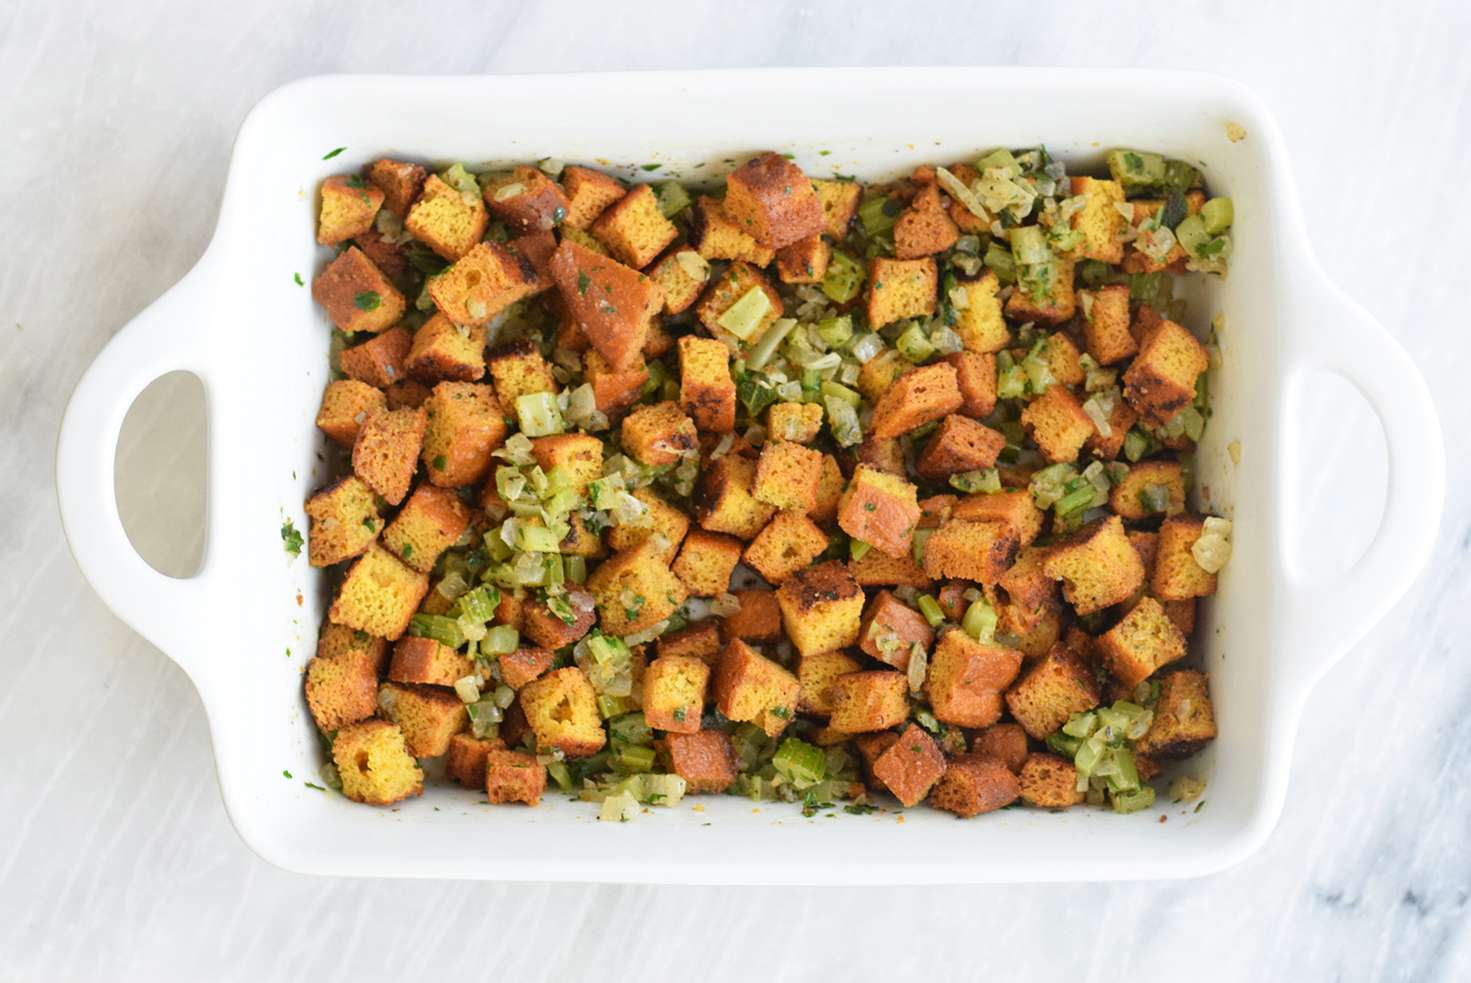 Toss together Keto Stuffing